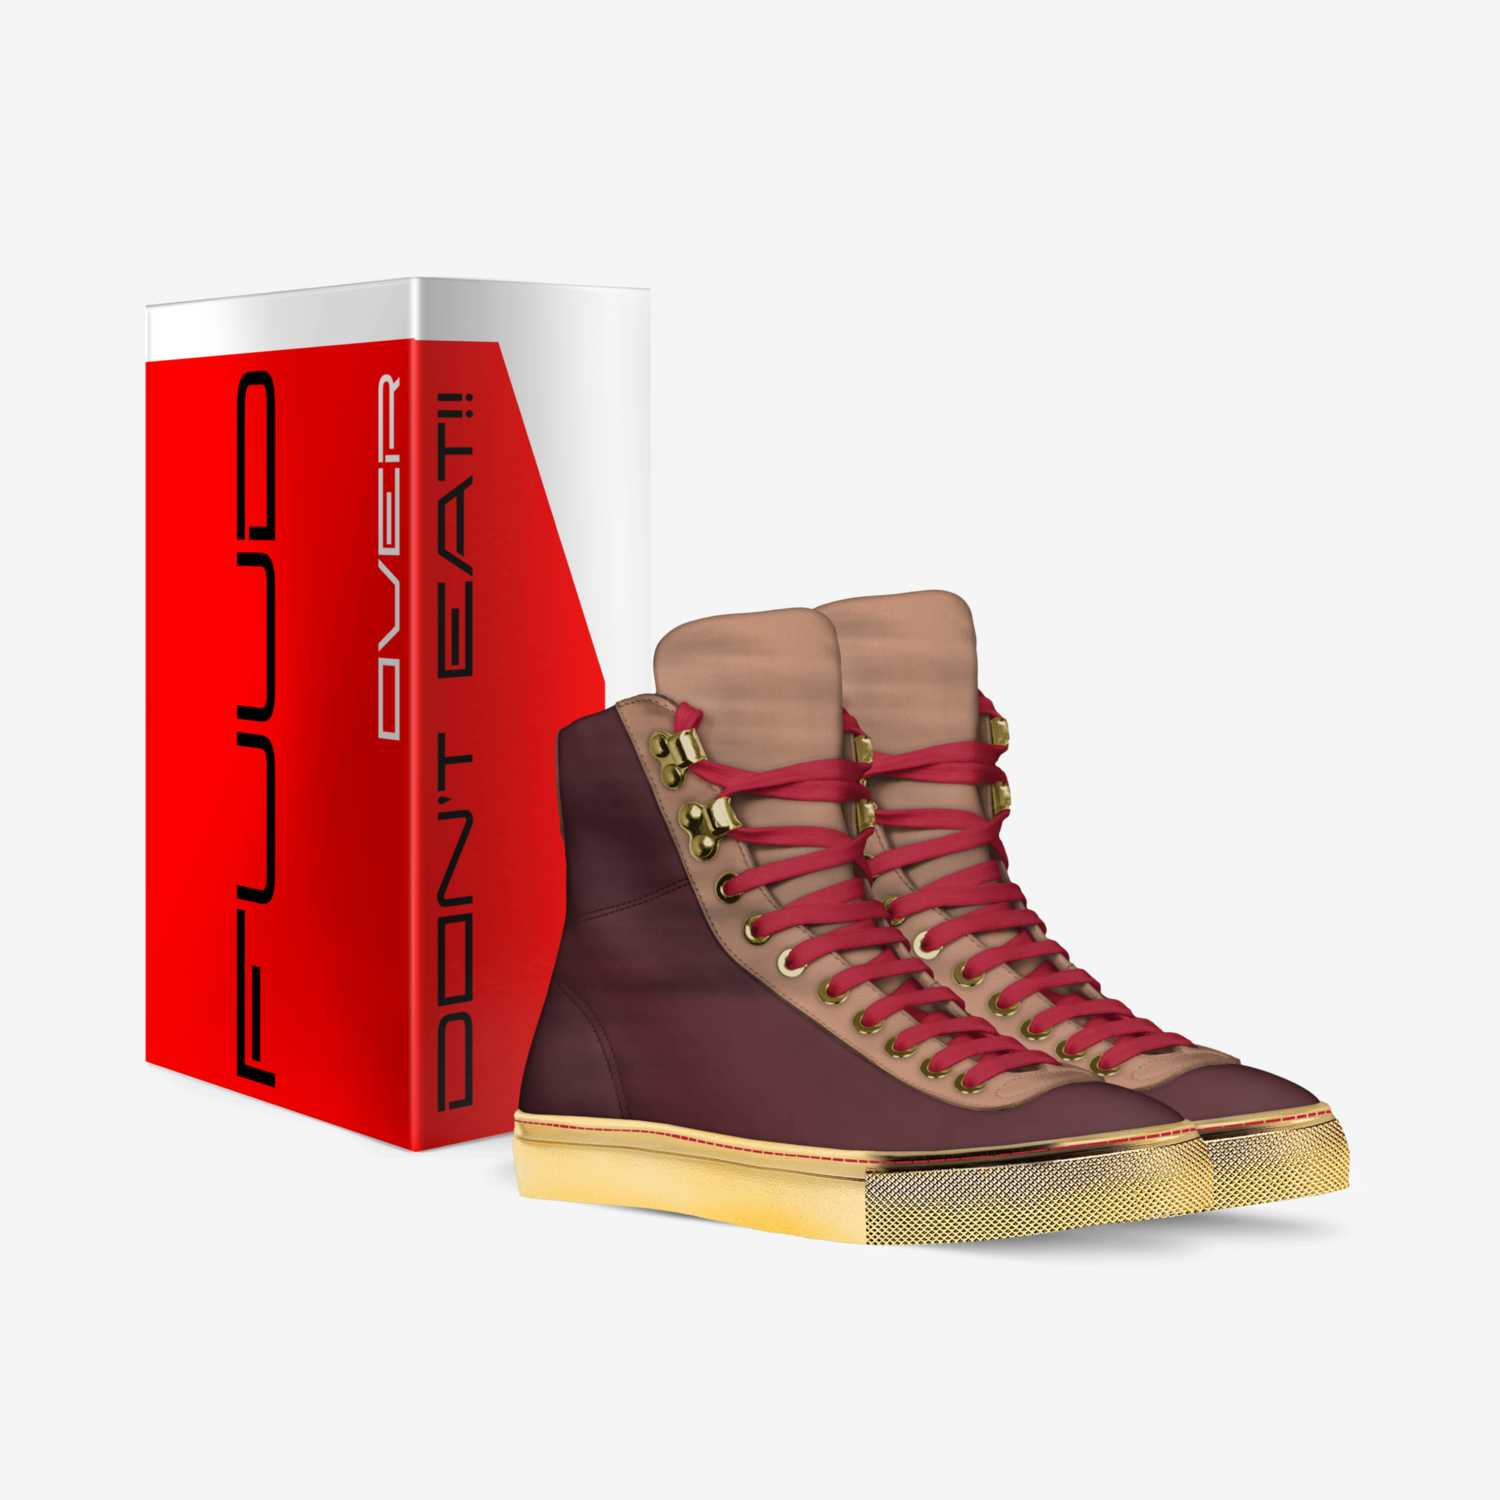 Kings- Red Velvet custom made in Italy shoes by The Fuud Shop | Box view